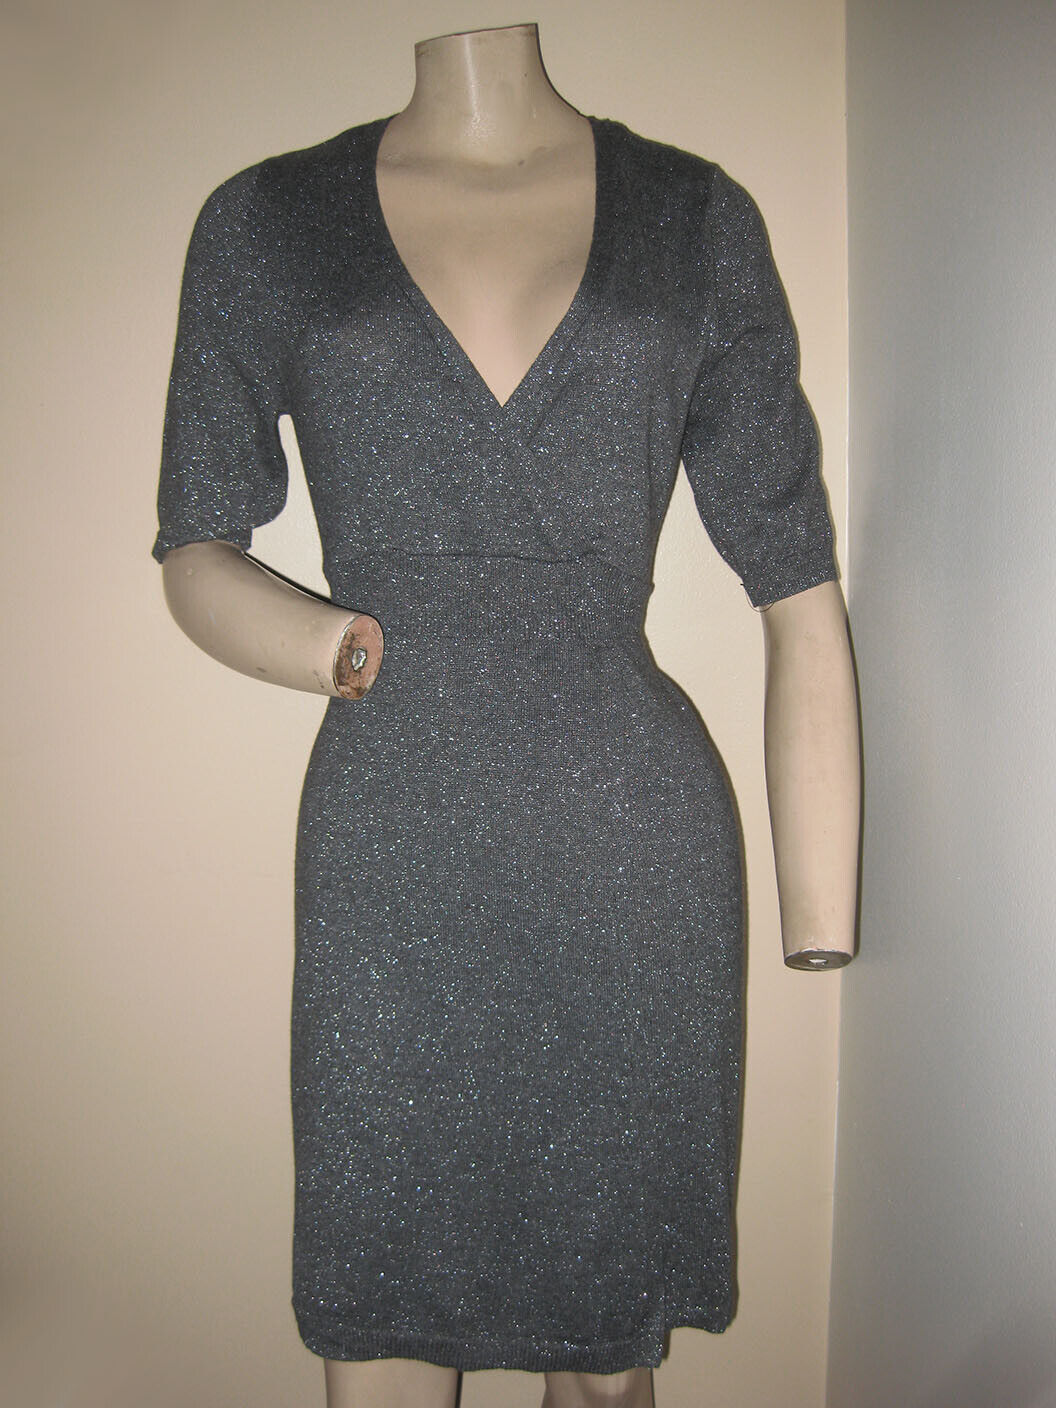 nwt gray metallic silver acrylic blend belted